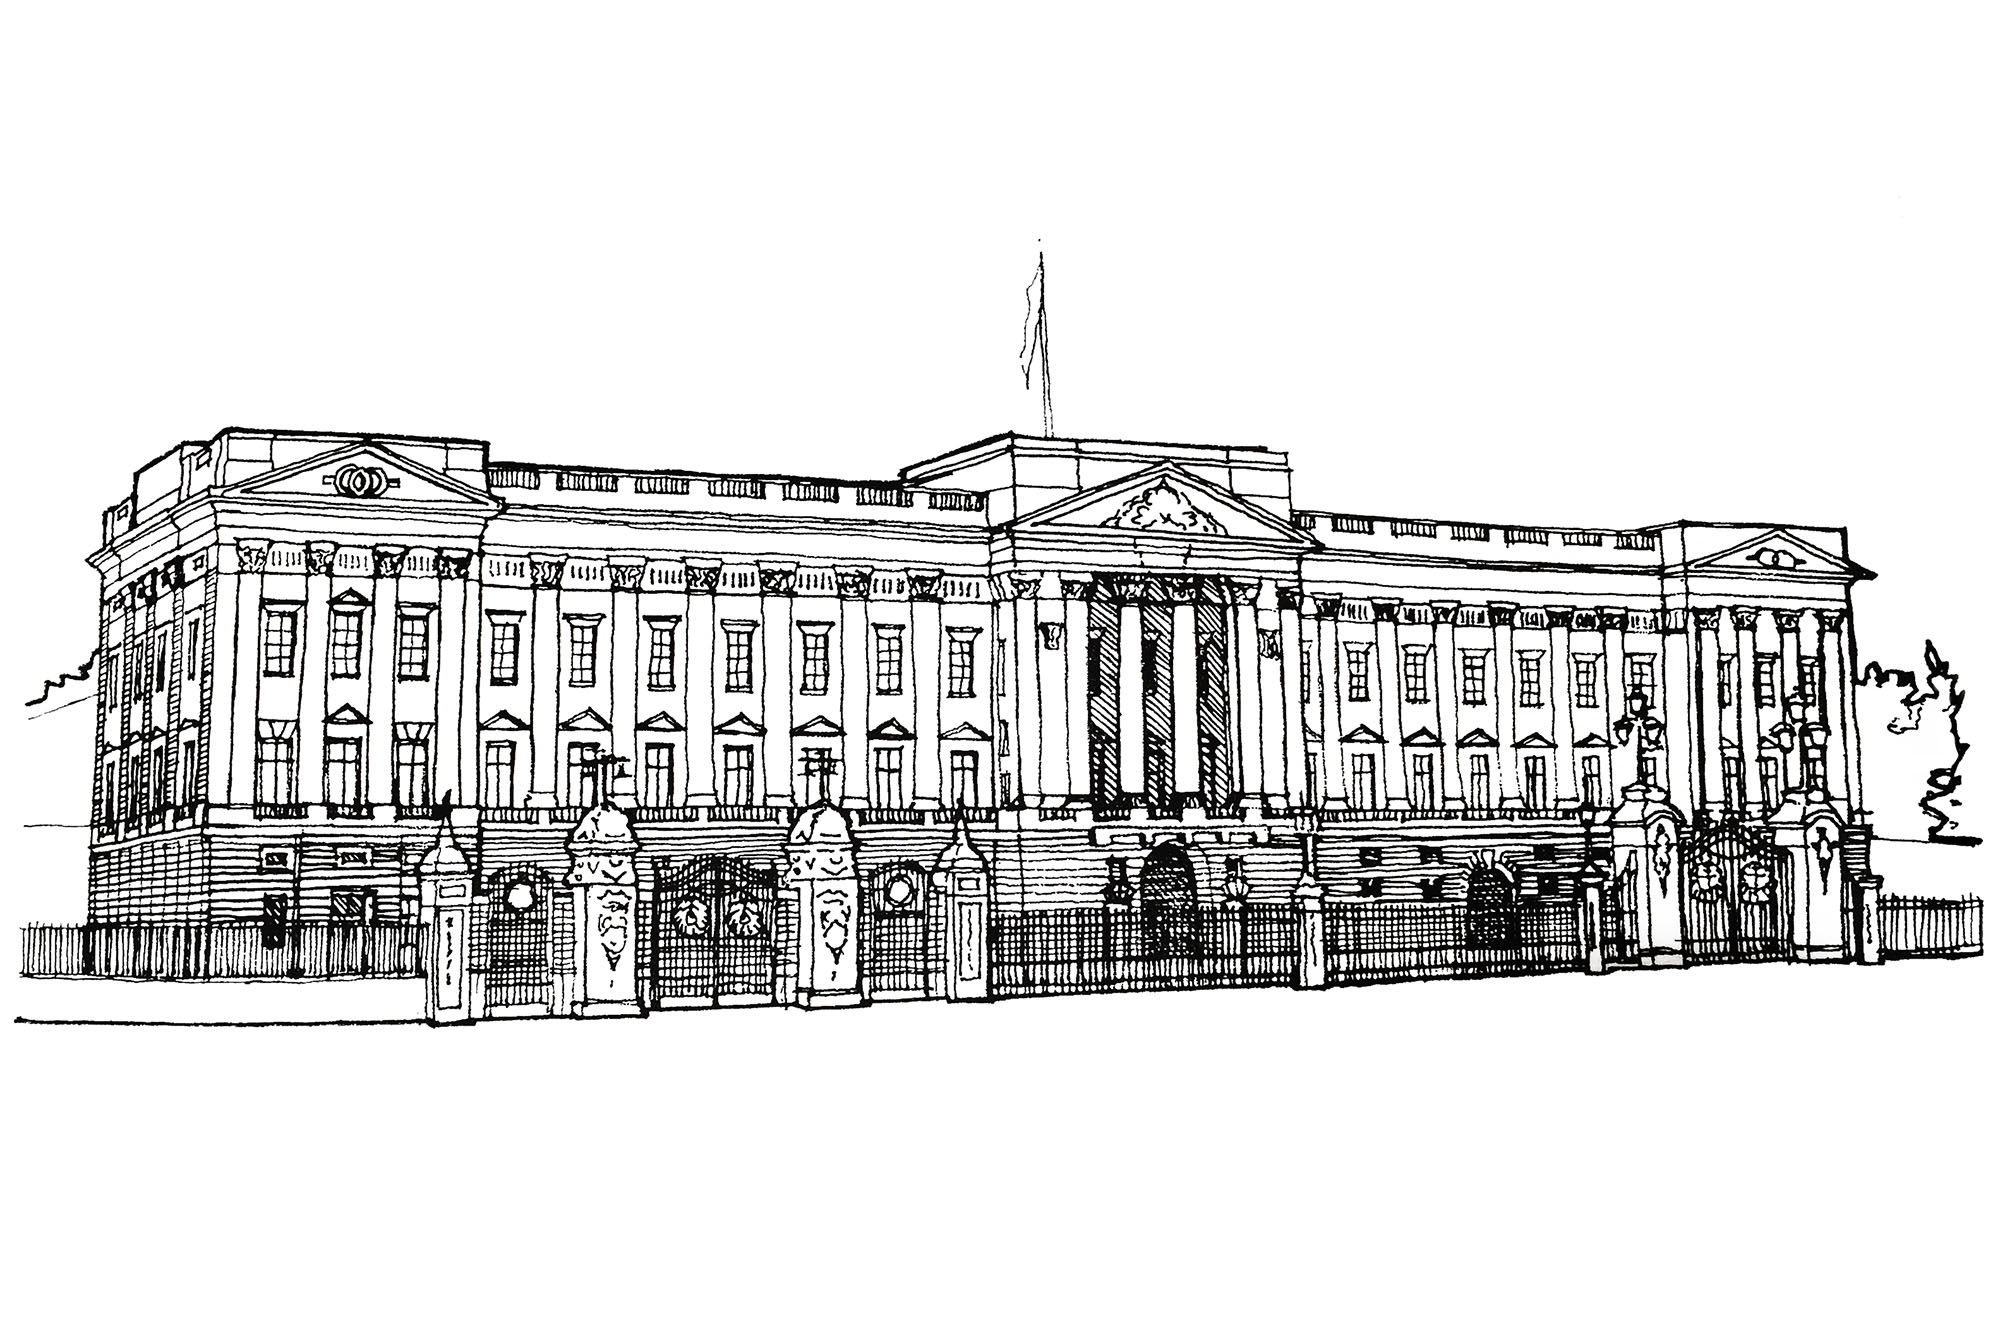 Une illustration de 1920 représentant Buckingham Palace à Londres